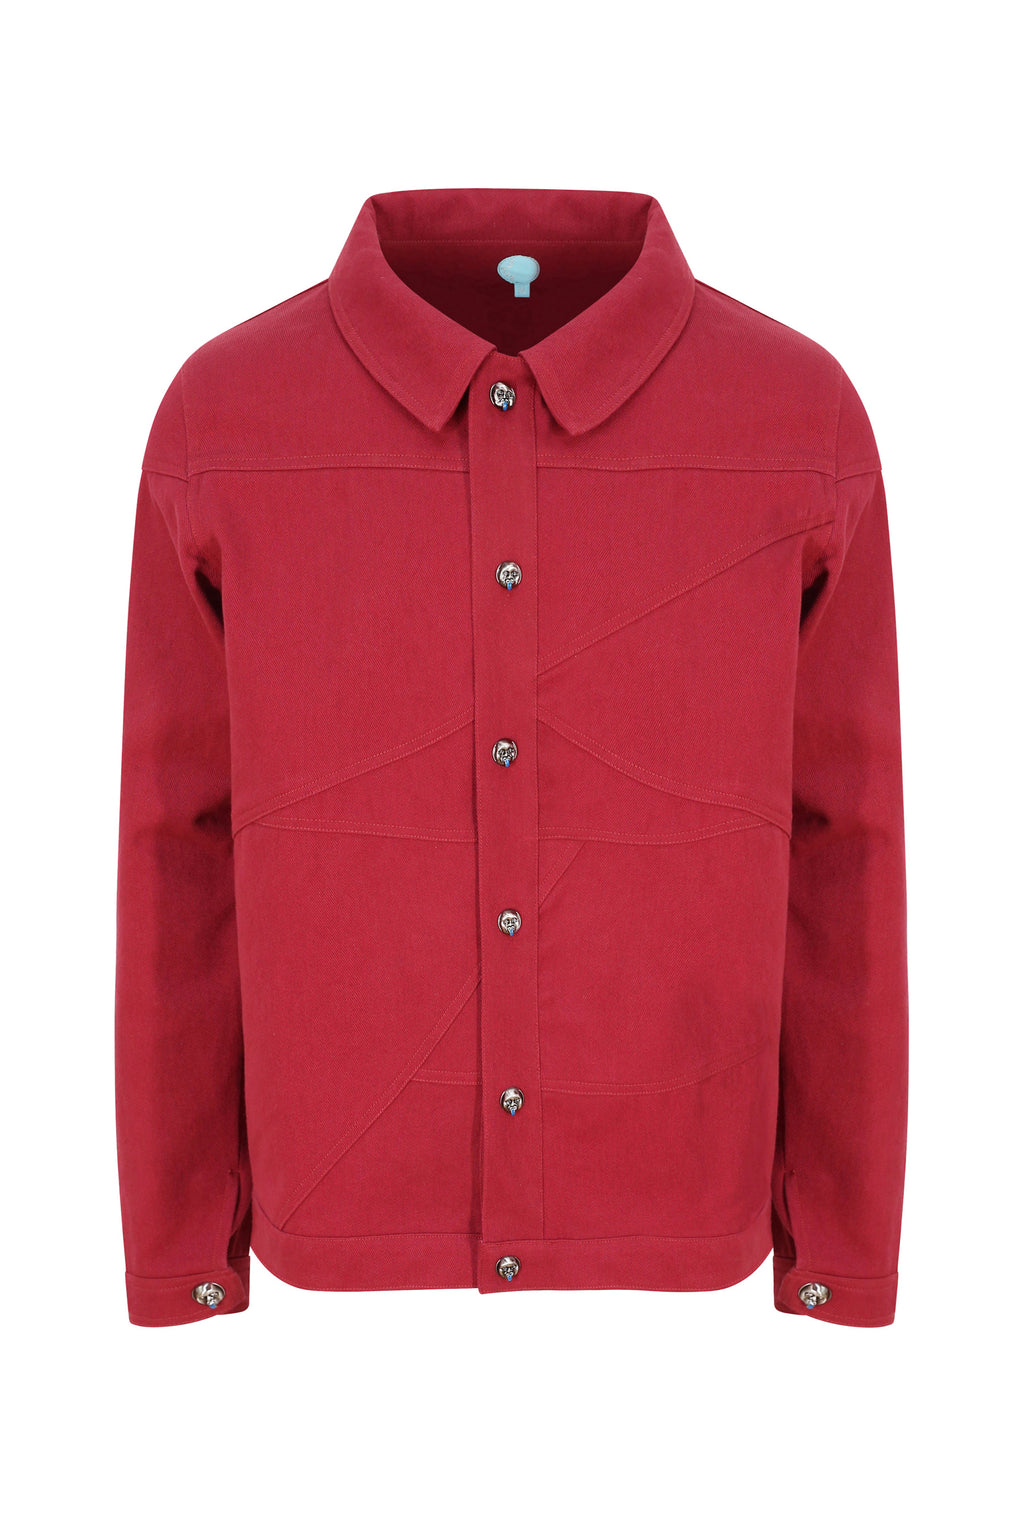 Adrian Unisex Deep Red Denim Jacket